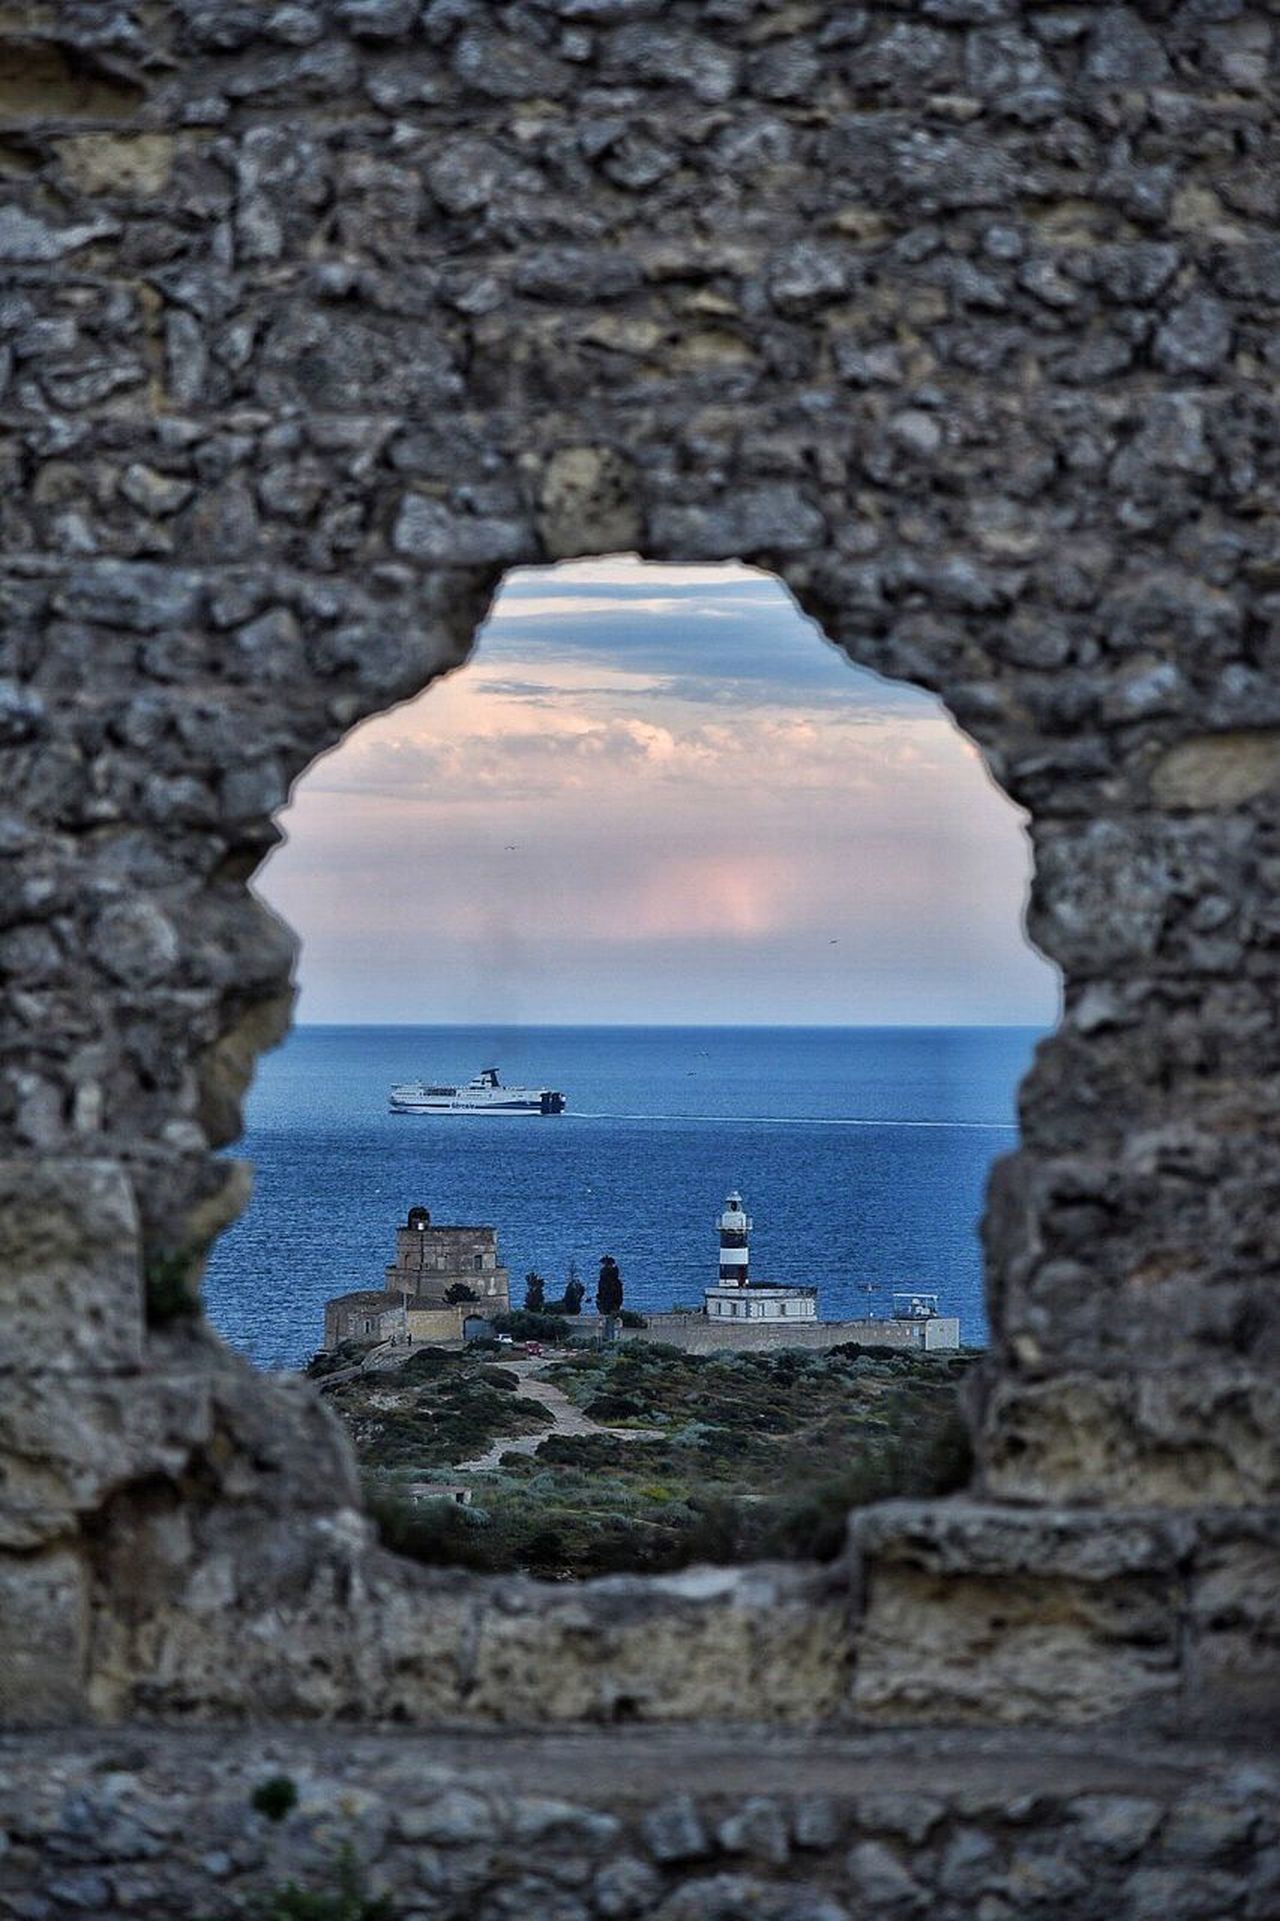 Sea Nature Water Beauty In Nature Horizon Over Water Rock - Object Outdoors No People Scenics Sky Day Tranquility Cagliari Urban City EyeEm EyeEm Masterclass EyeEm Gallery Cagliari Relax Passeggiata Cagliari, Sardinia EyeEmbestshots Eyeemphotography EyeEmBestPics EyeEm Best Shots Outside Tranquil Scene Lighthouse